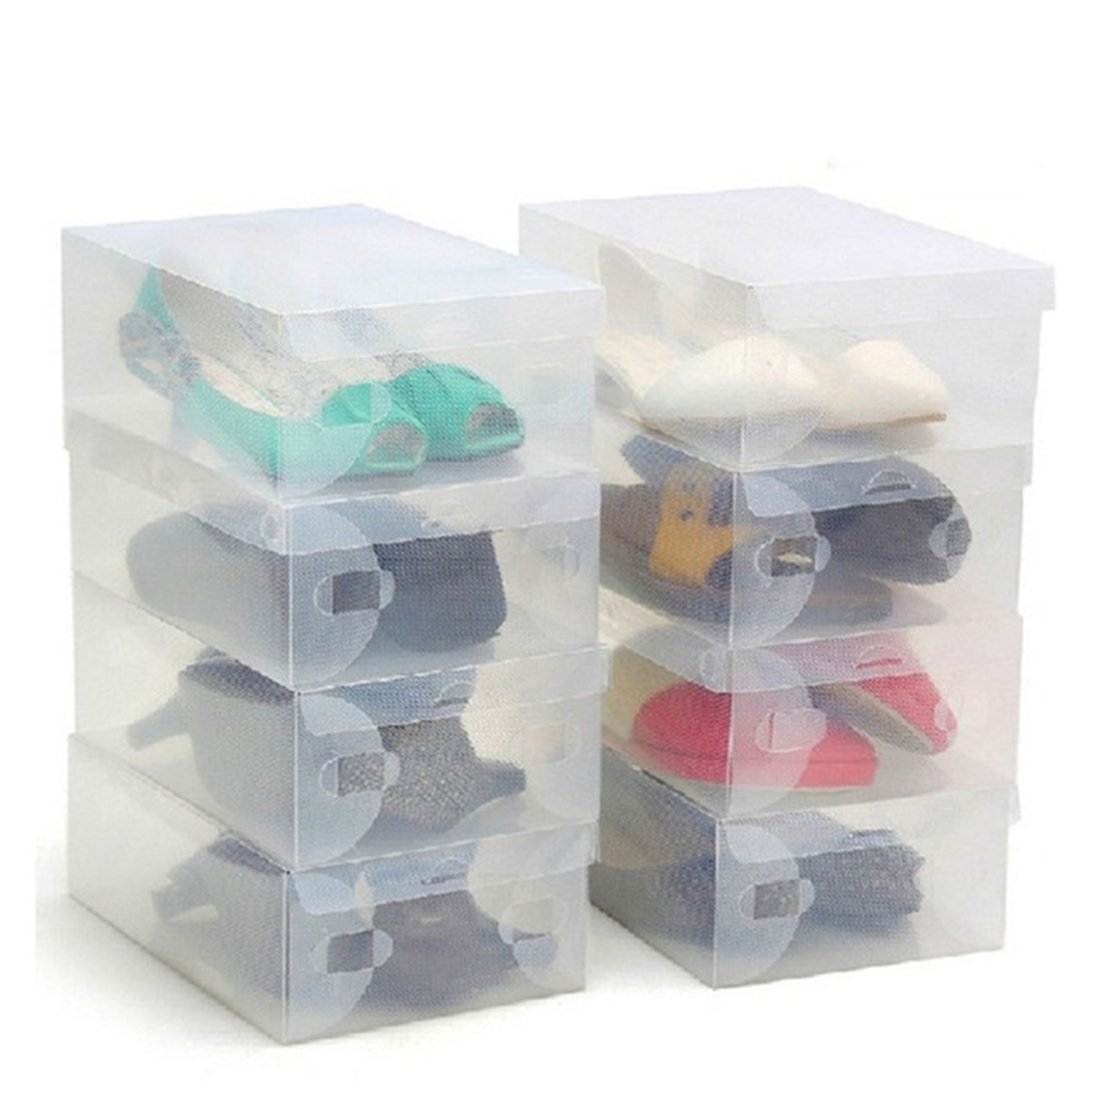 20 Pack of Clear Corrugated plastic Shoe storage boxes for Ladies Men-Stackable and Foldable-Plastic and Clear Boxes by Kurtzy,Stackable Shoe Storage Box - Ideal for Travel